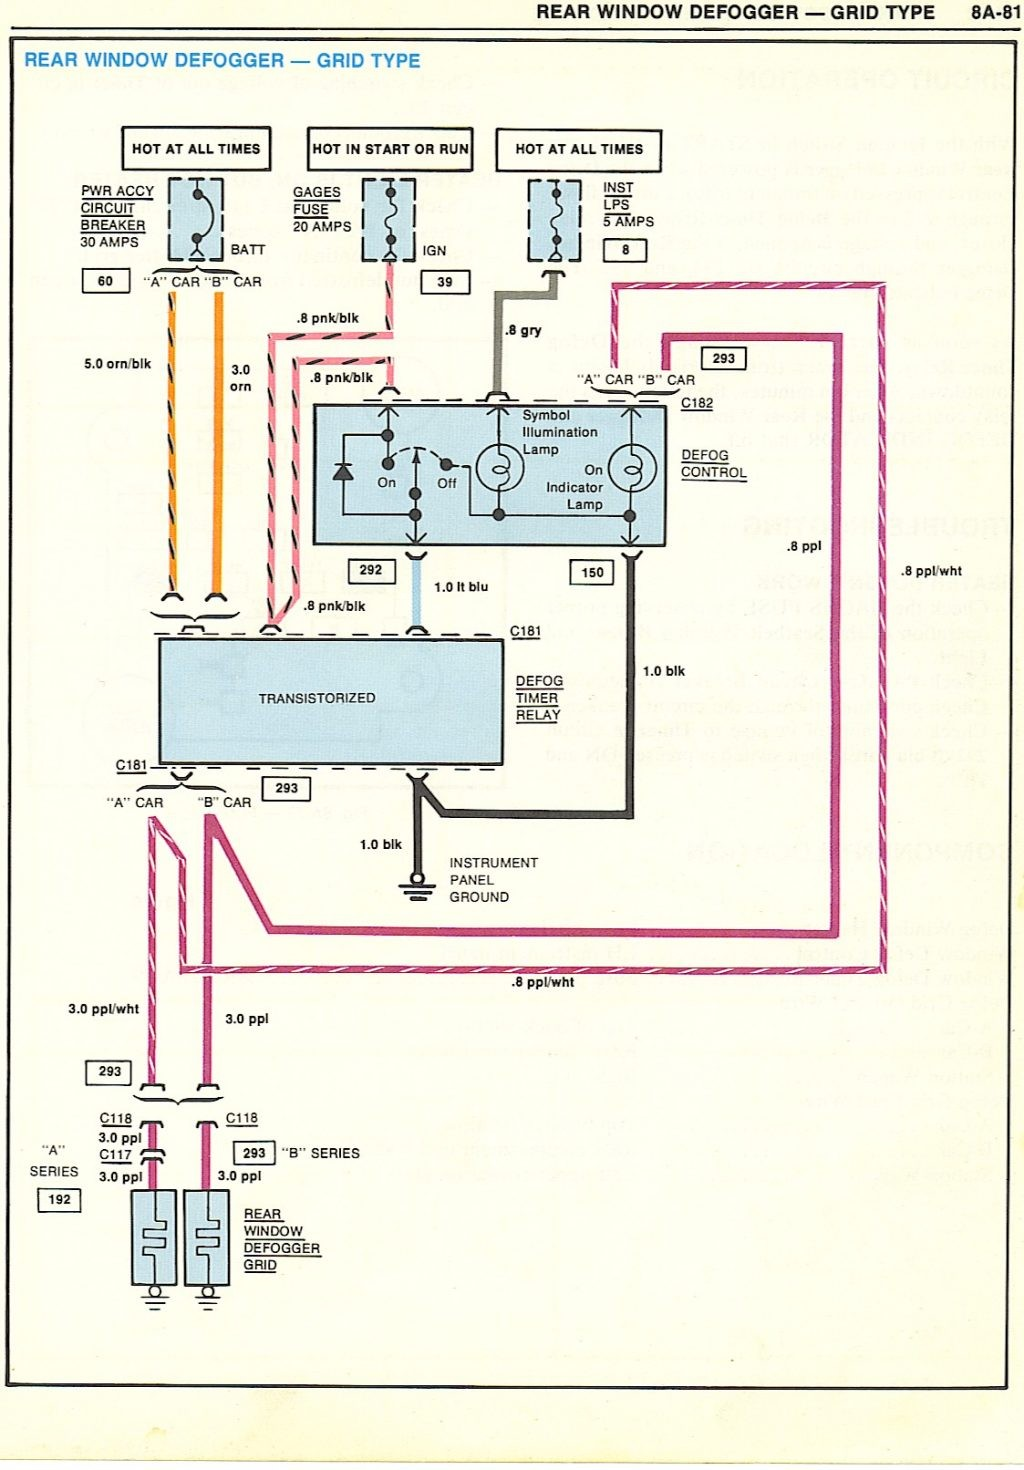 Haier split ac wiring diagram - Diagrams online